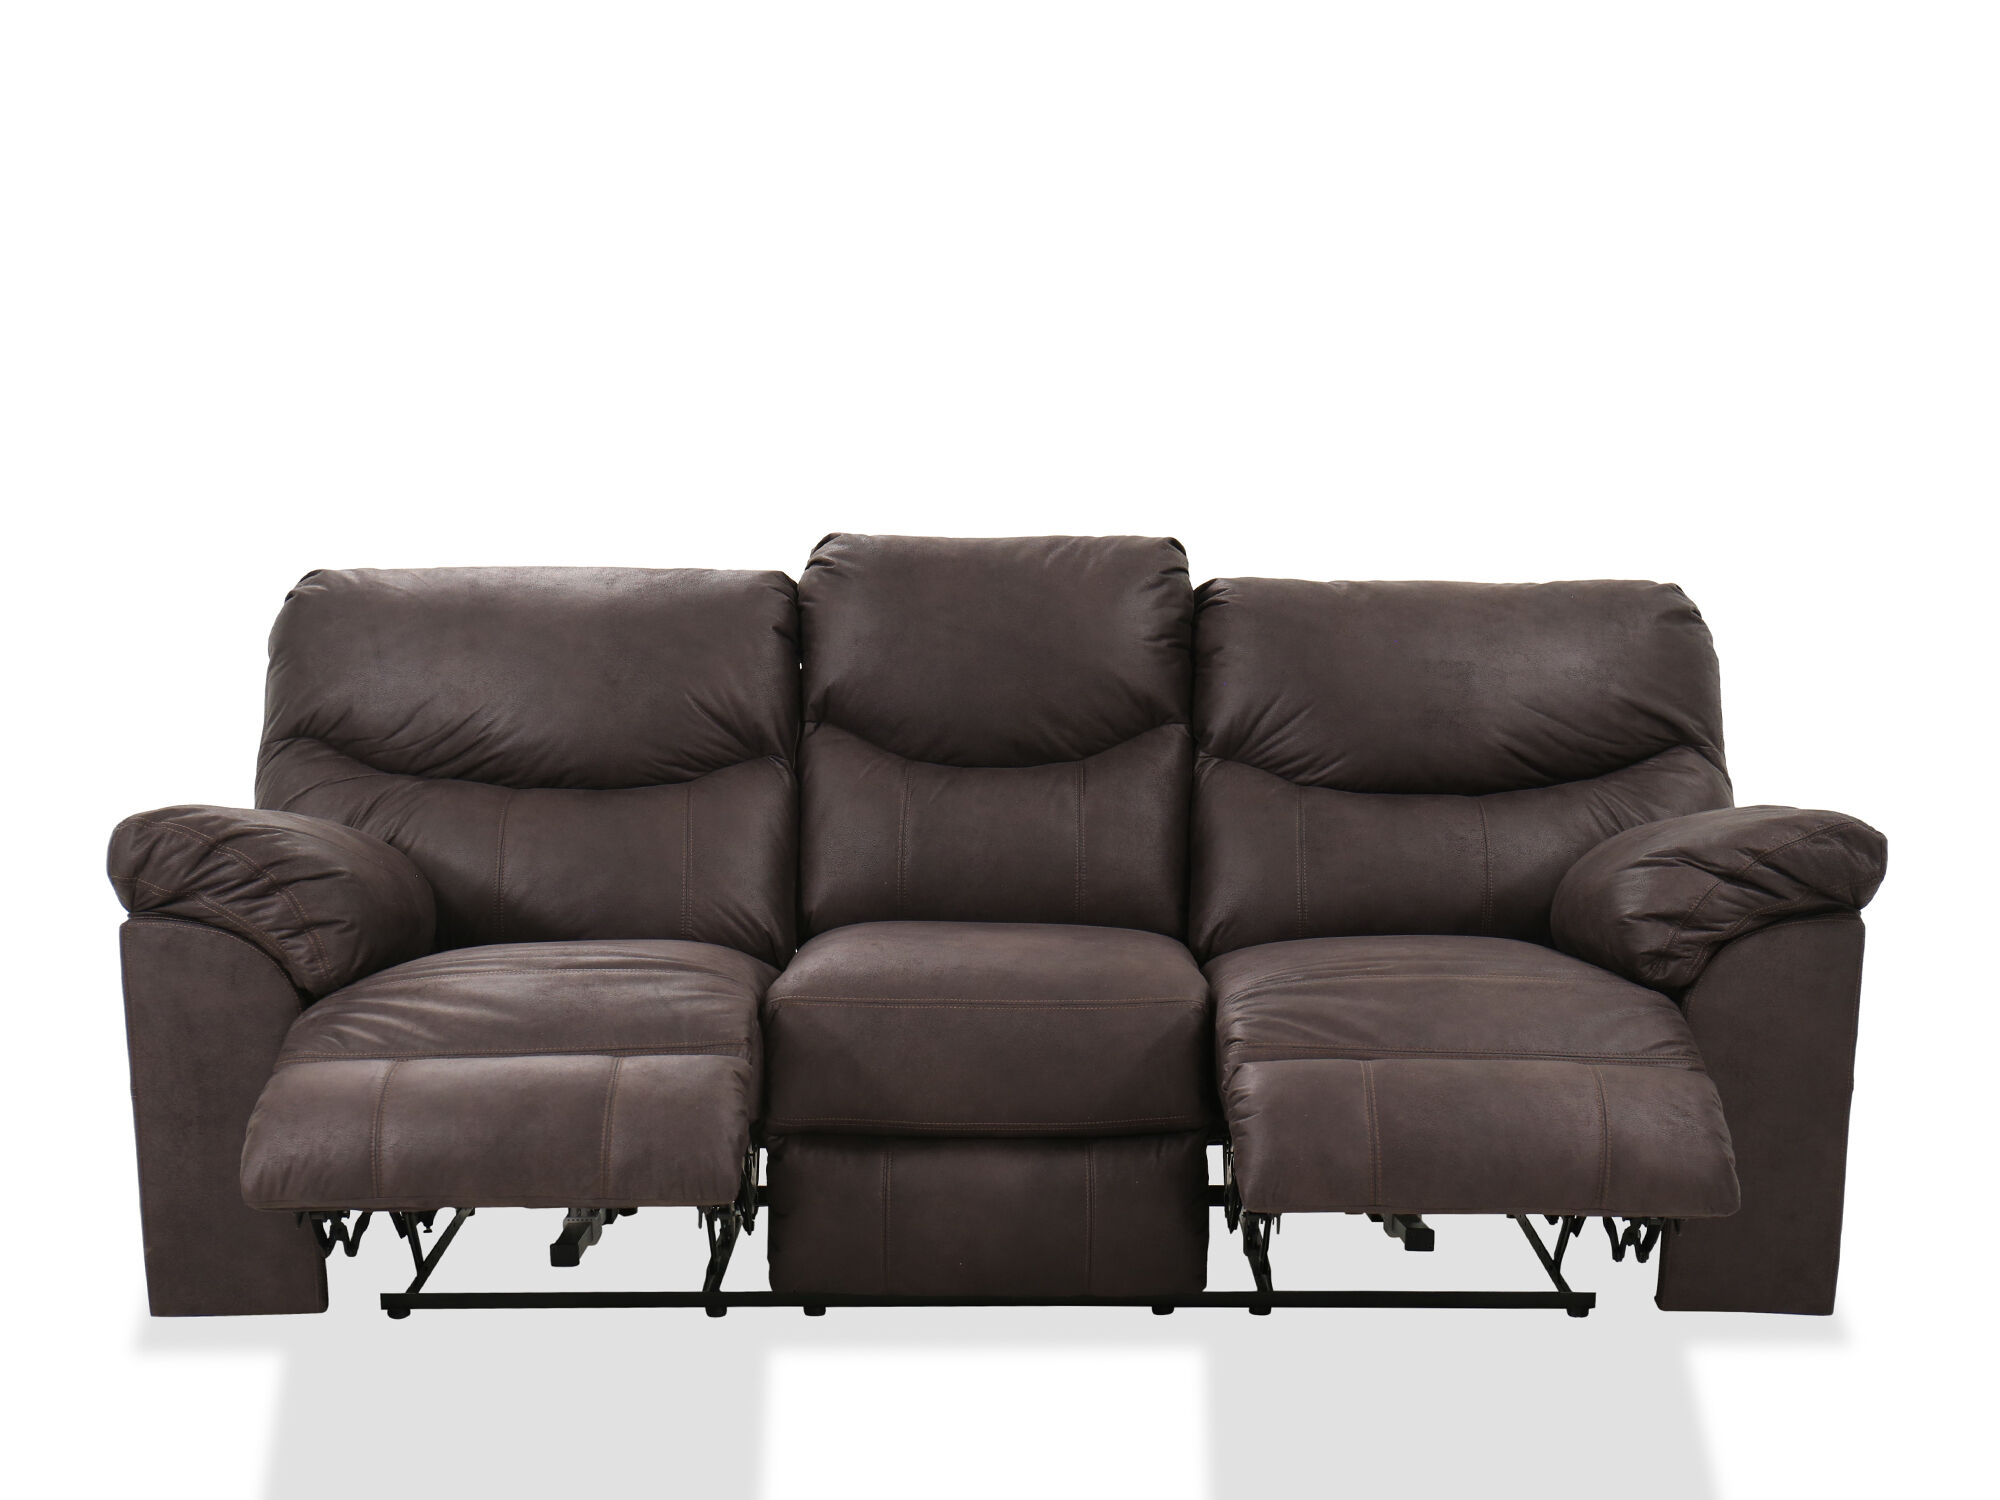 Contemporary 93 Power Reclining Sofa In Teak Mathis Brothers Furniture